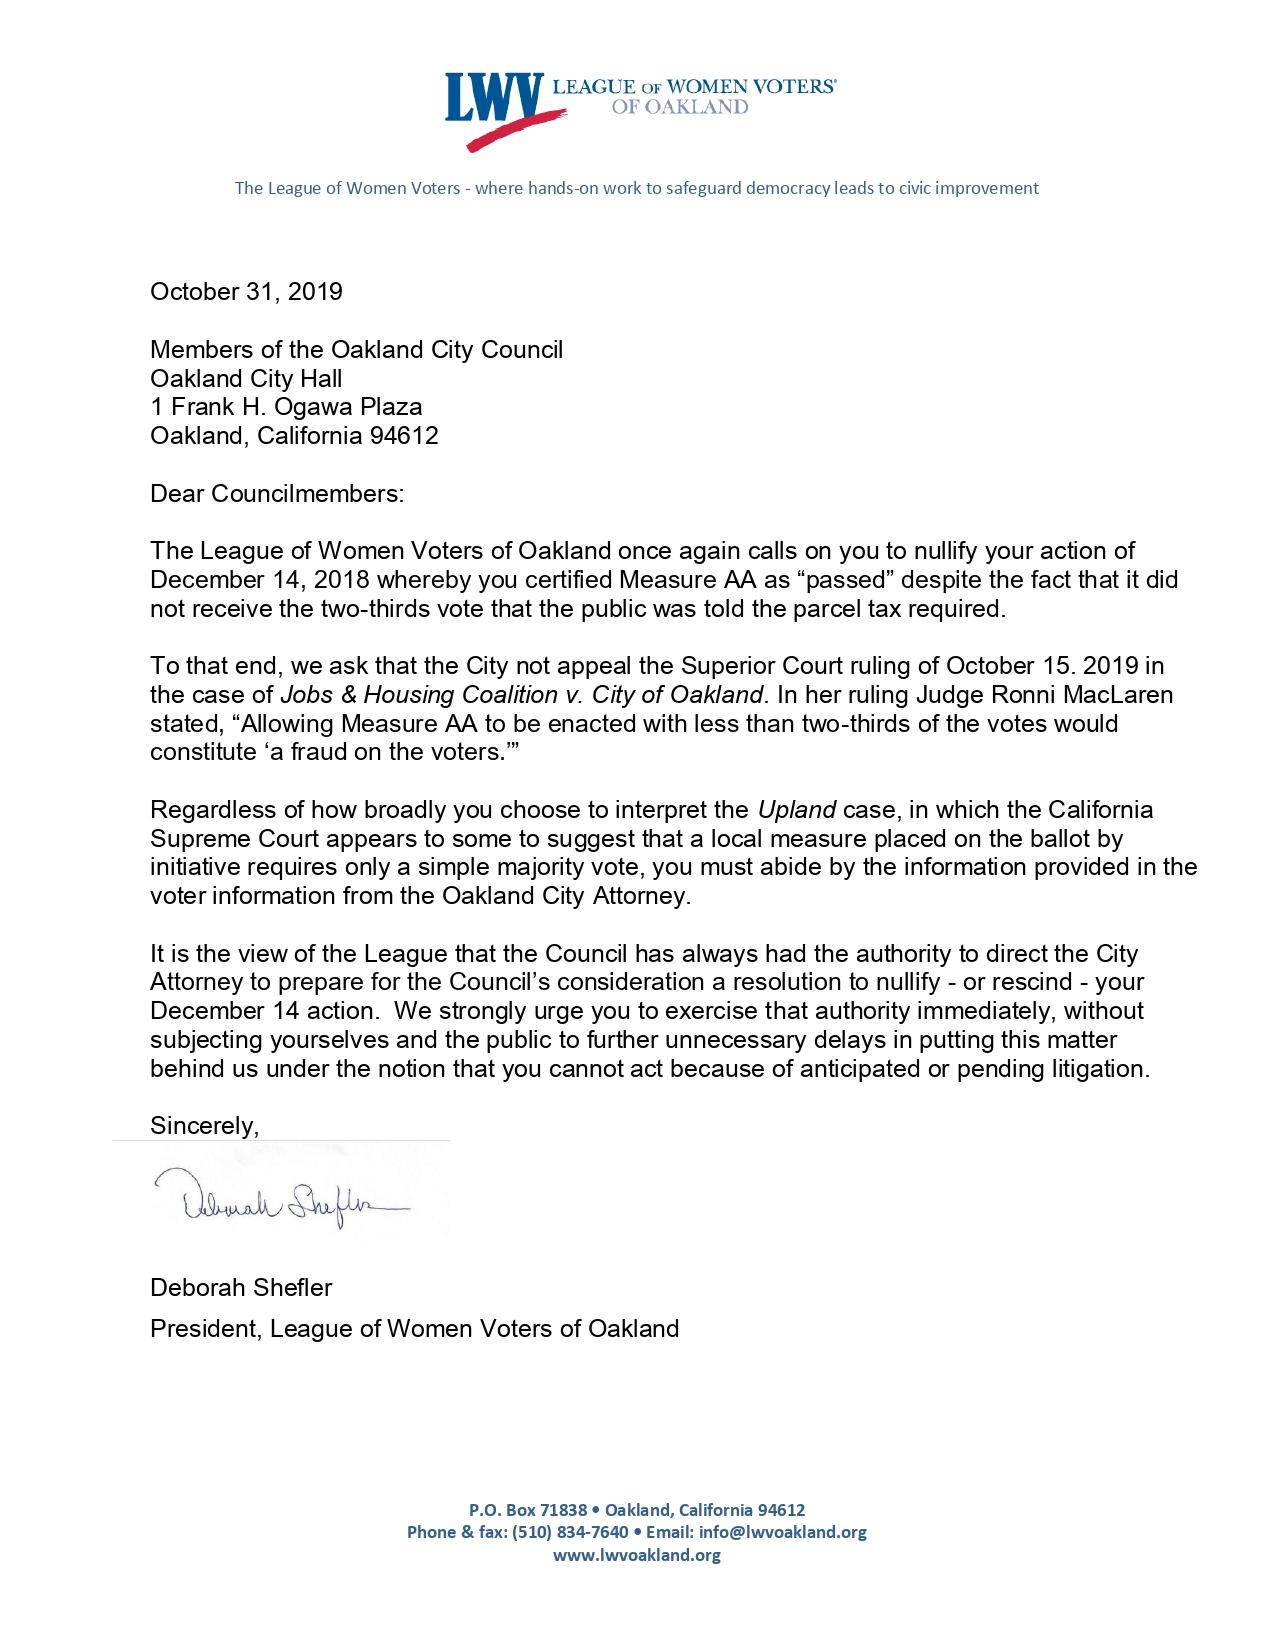 LWVO October 2019 letter to City Council re: Measure AA